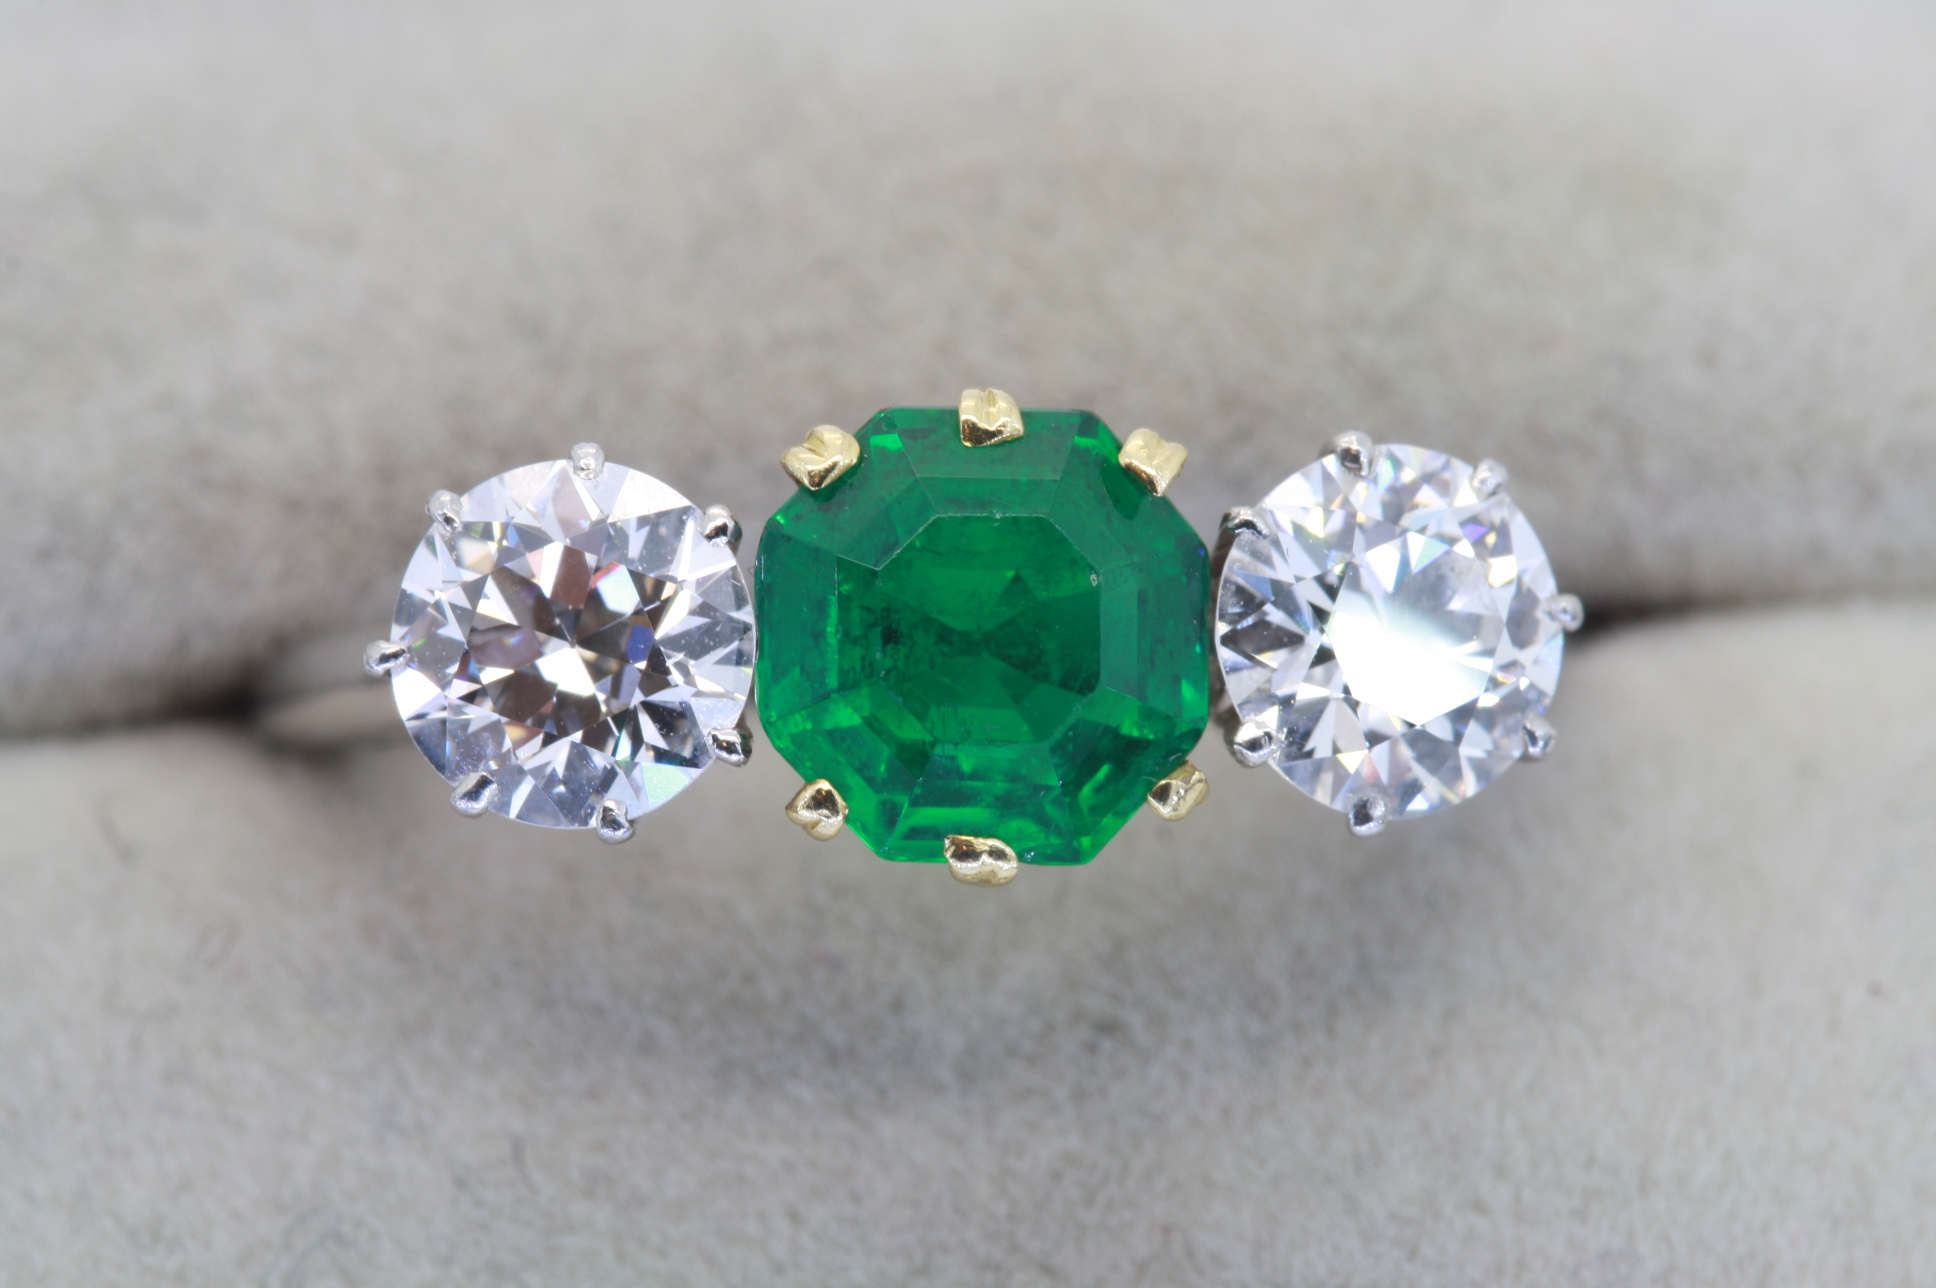 Emerald And Diamond Three Stone Ring With Emerald And Diamond Three Stone Rings (Gallery 23 of 25)